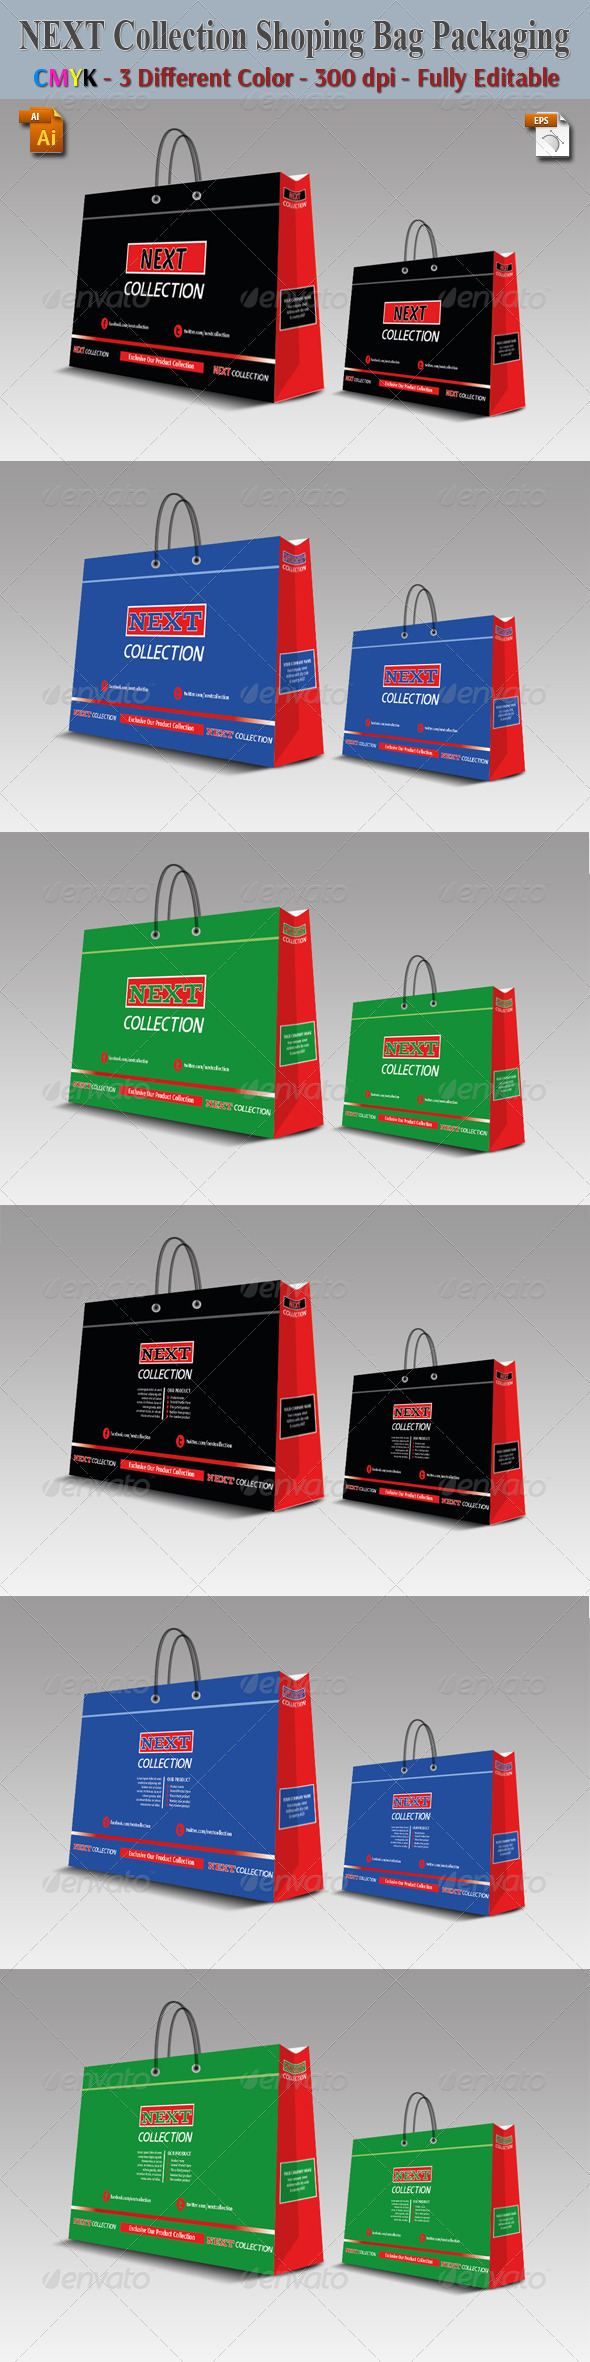 GraphicRiver Spacial Collection Shoping Bag Packaging 5616591